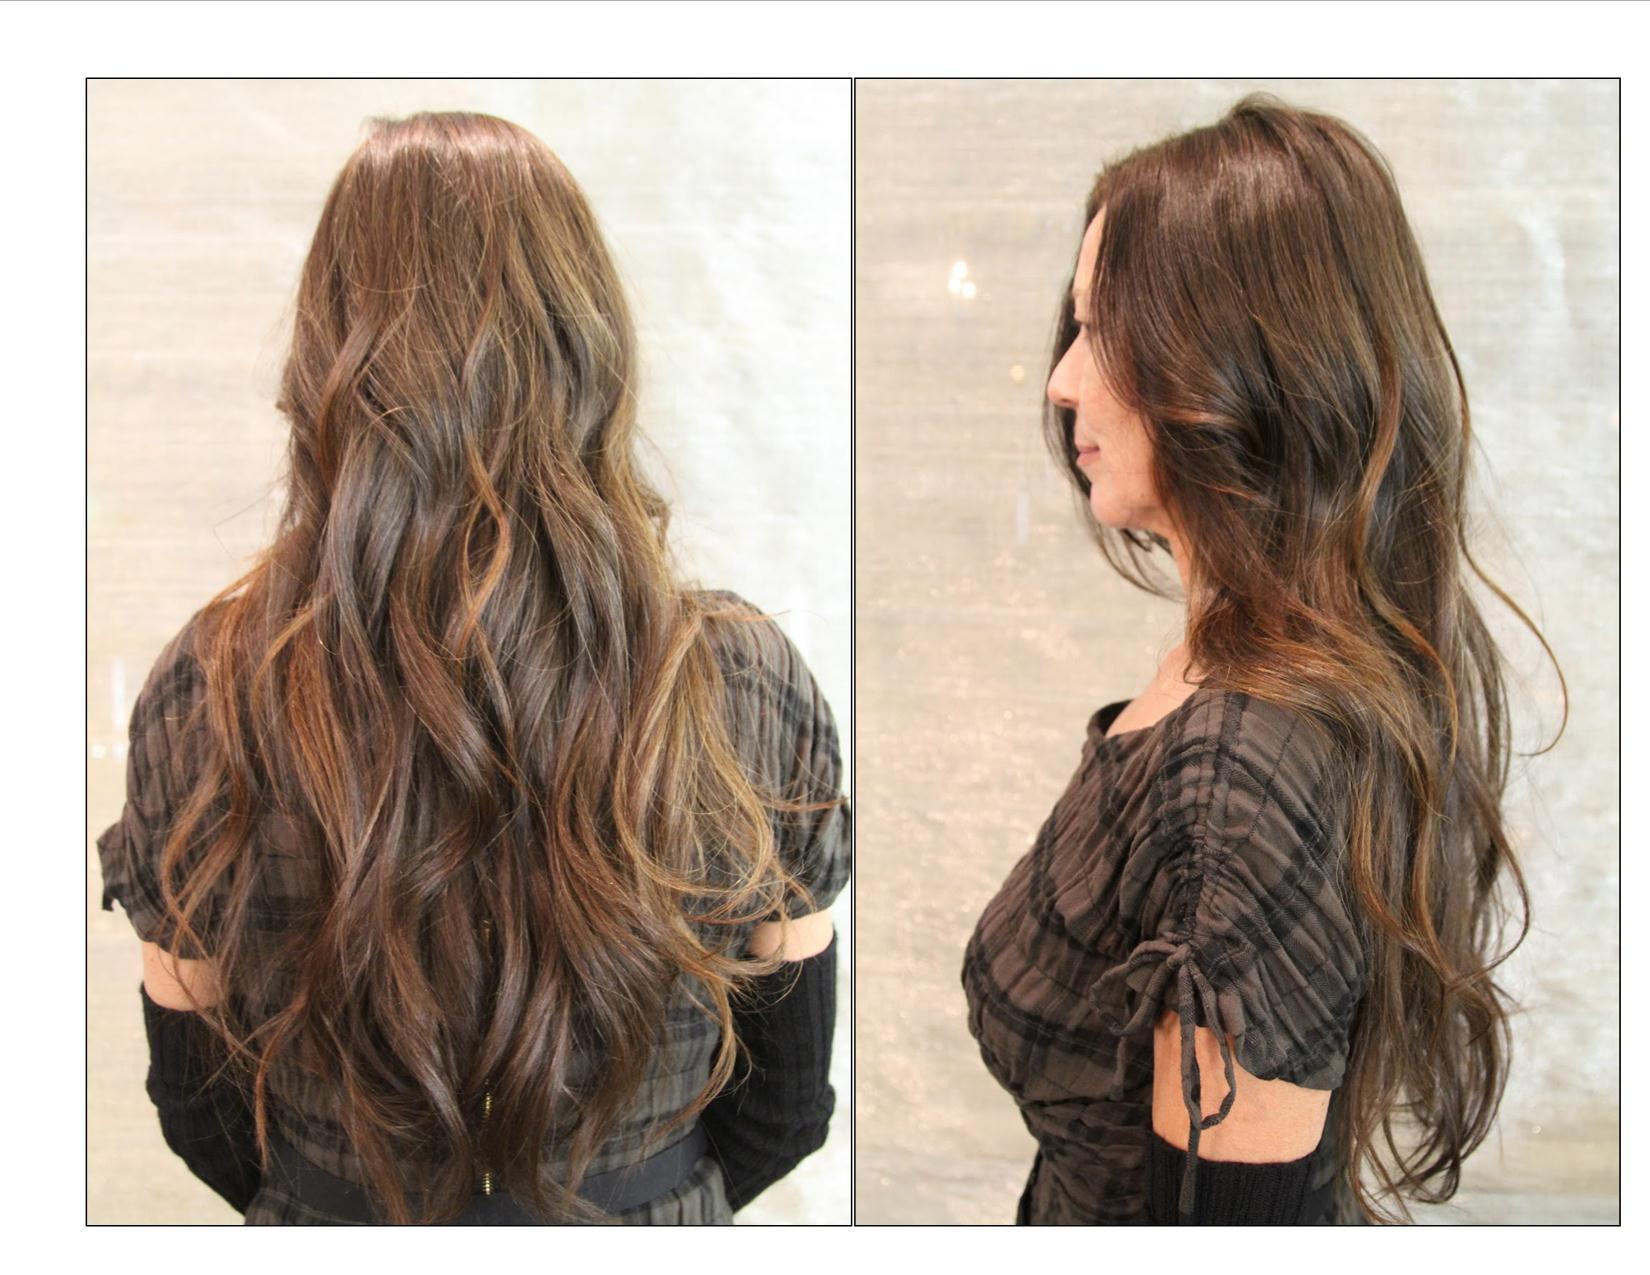 Brazilian Blowout Before and After Curly Hair